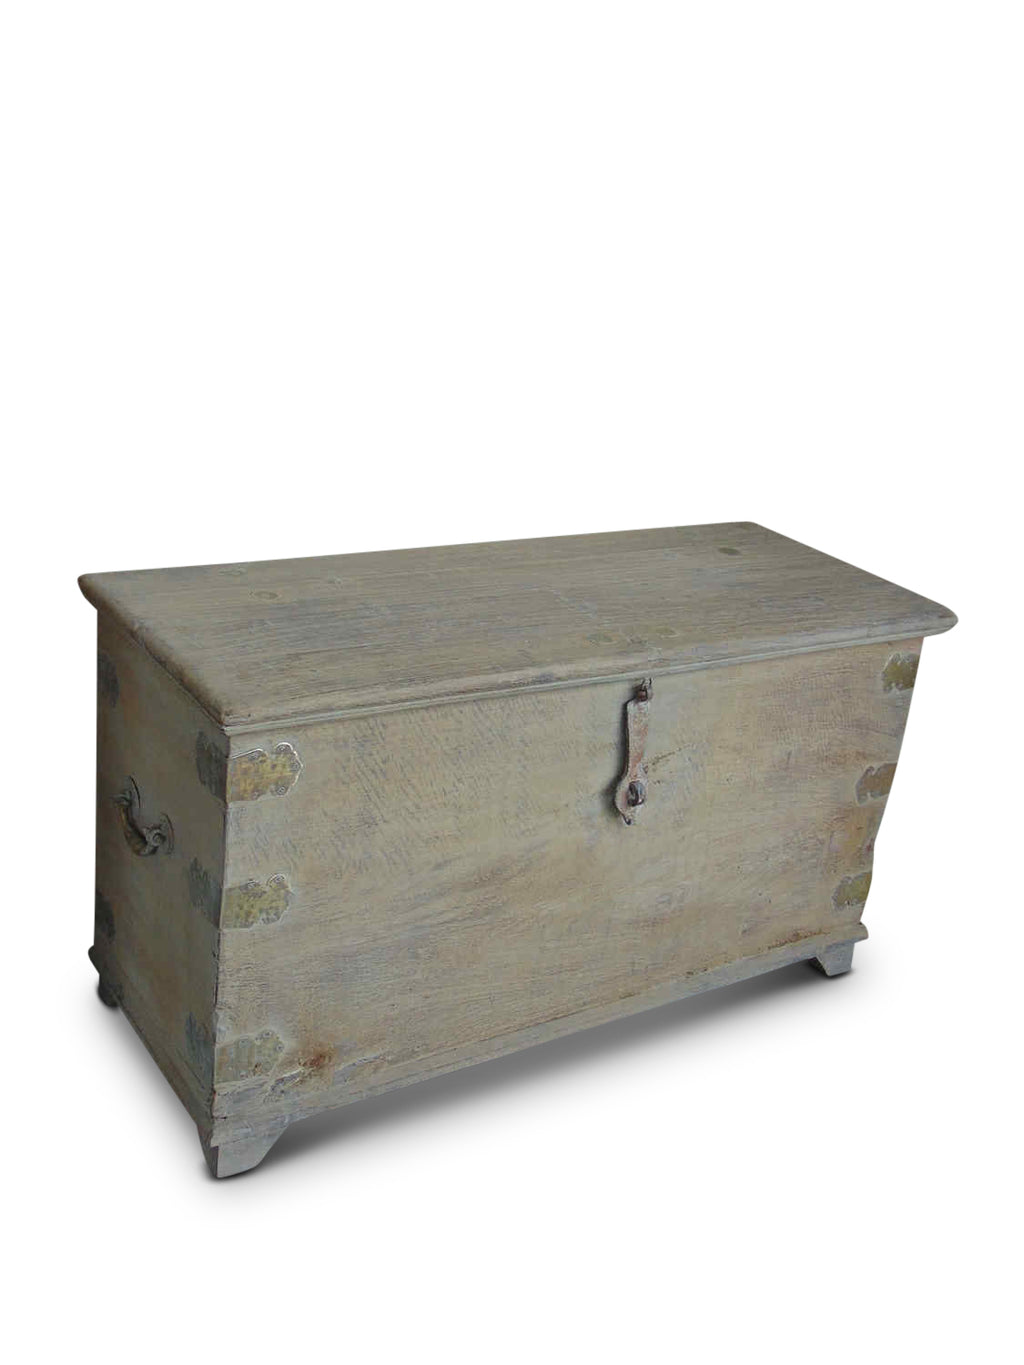 Antique Trunk - Brass Handle